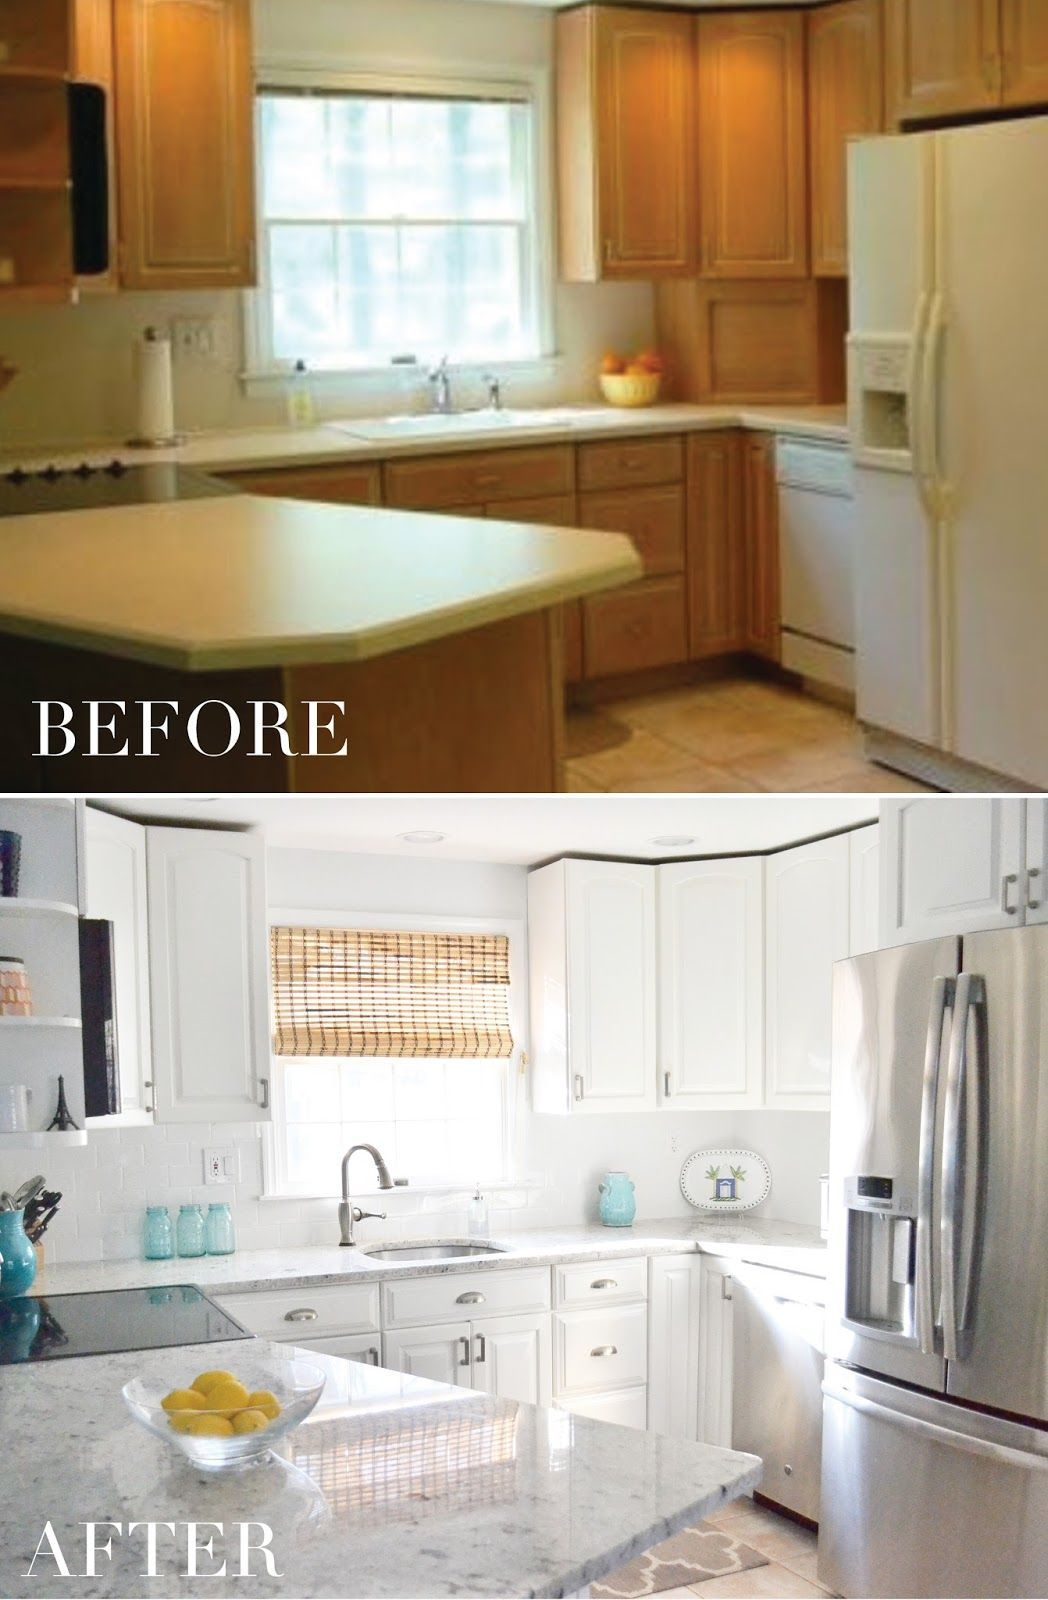 A Budget Friendly Kitchen Transformation From Dull To Bright White White Kitchen Painted Cab New Kitchen Cabinets Paint Cabinets White Kitchen Transformation